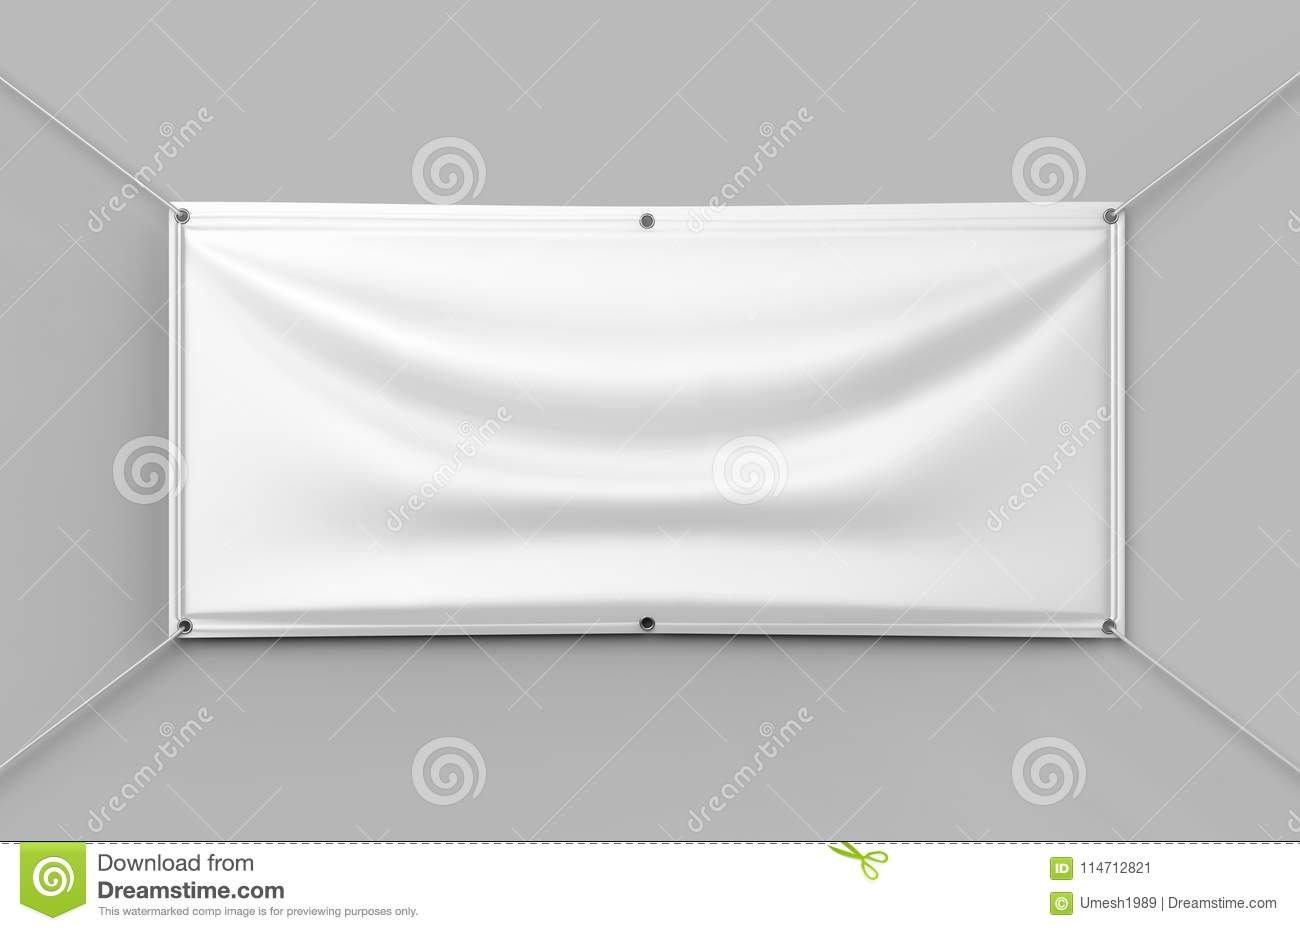 Fabric Exhibition Stand Vector : Indoor cartoons illustrations vector stock images